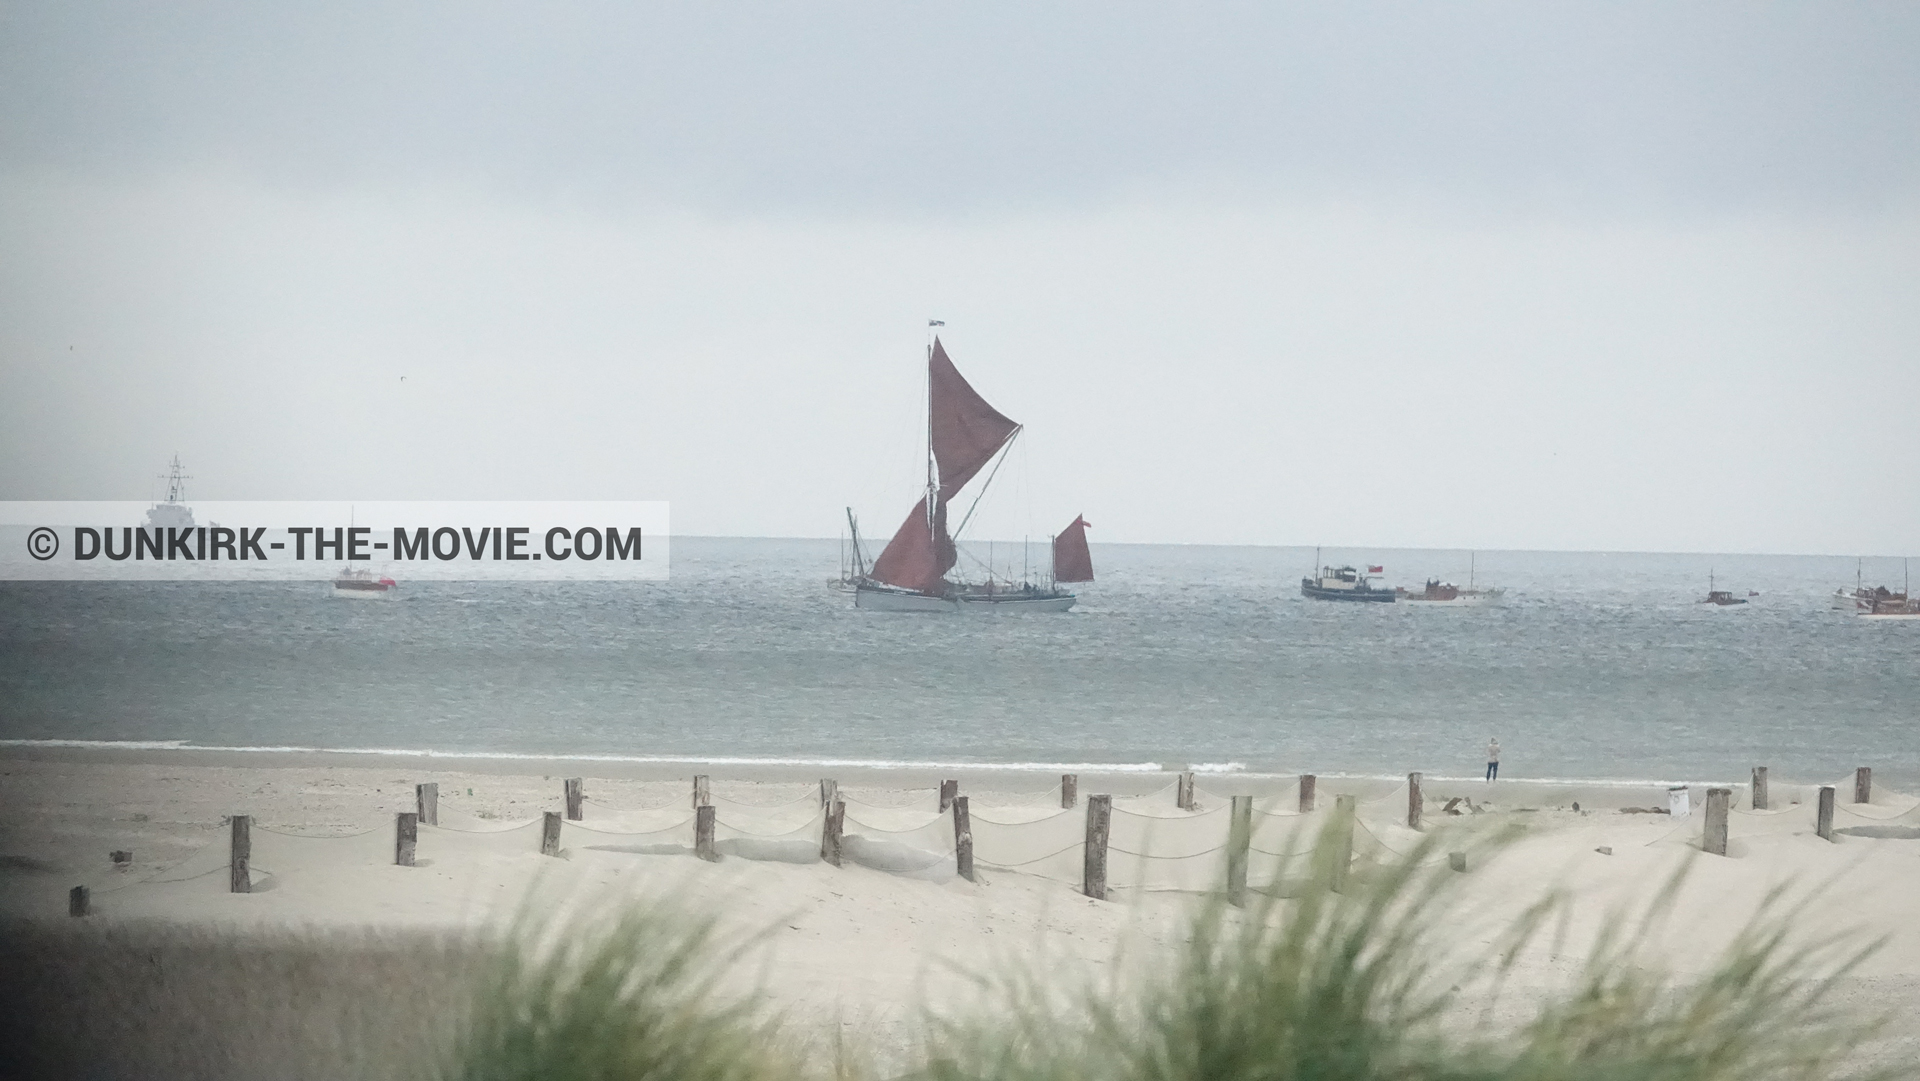 Picture with boat, grey sky, beach, Henry Finlay lifeboat,  from behind the scene of the Dunkirk movie by Nolan